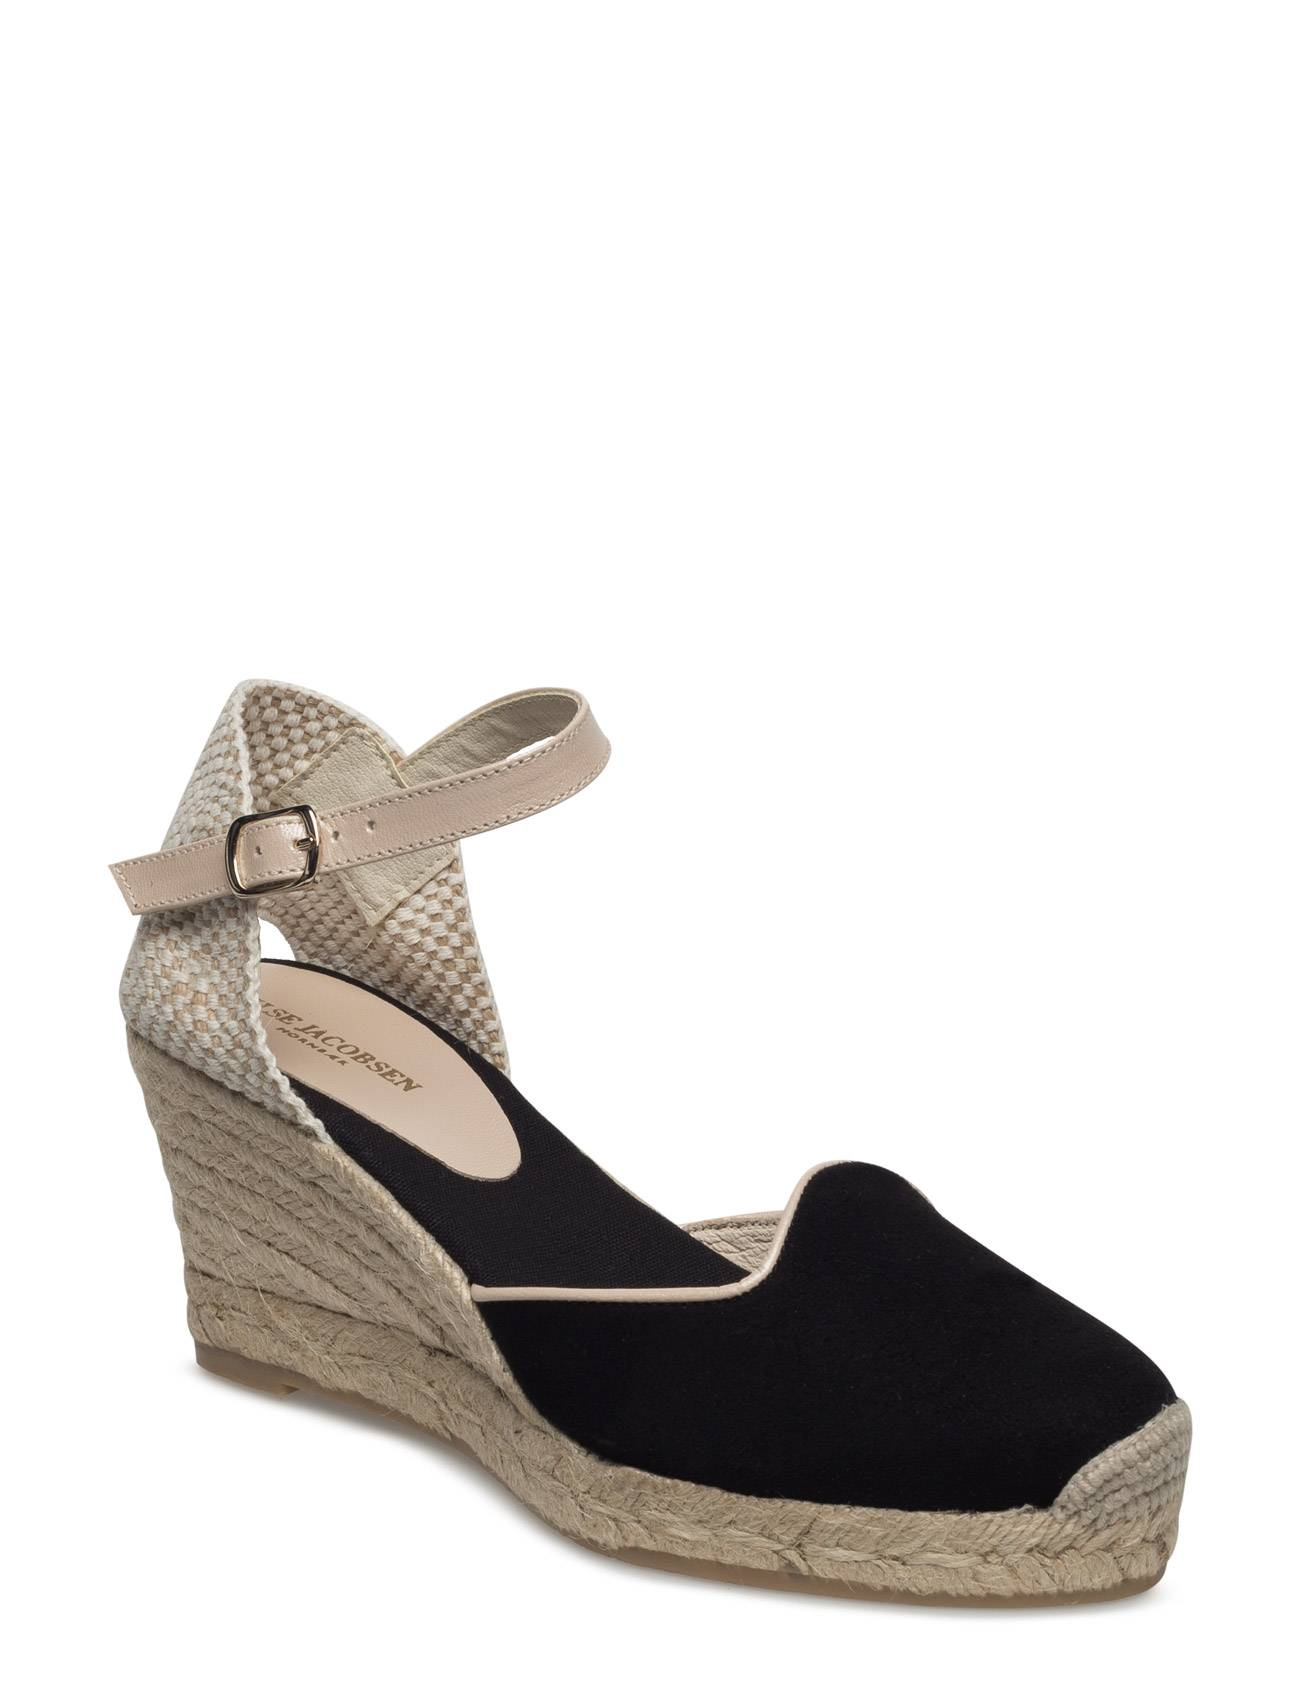 Ilse Jacobsen Espadrille Wedge